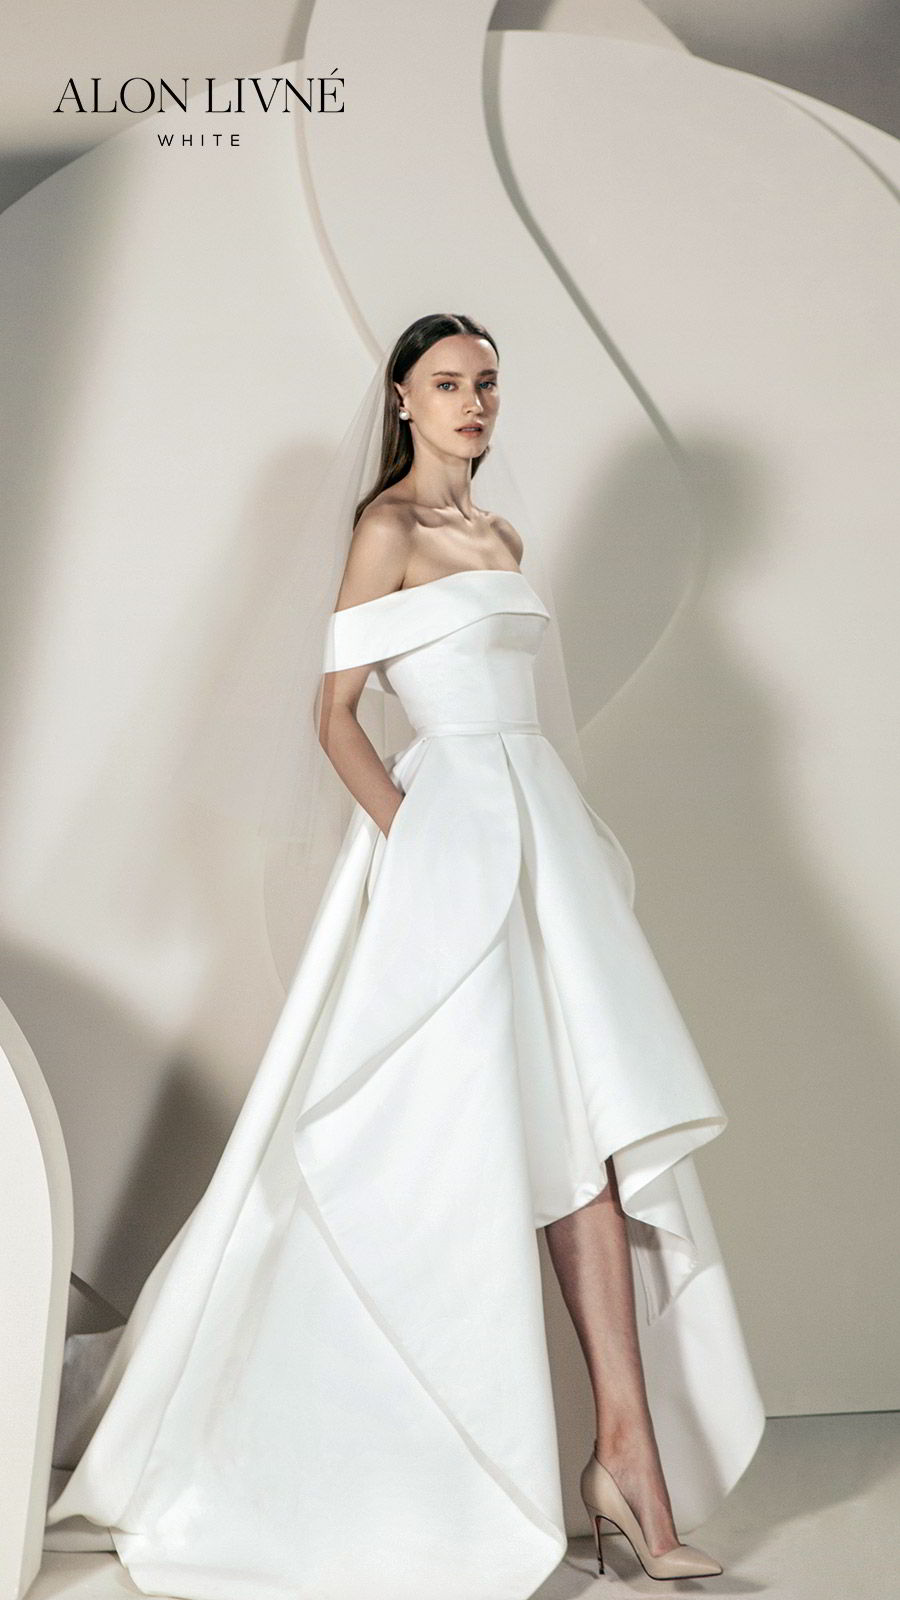 alon livne white spring 2020 bridal off shoulder straight across neckline foldover ball gown a line simple wedding dress high low skirt pocket (erica) clean minimal modern chic mv